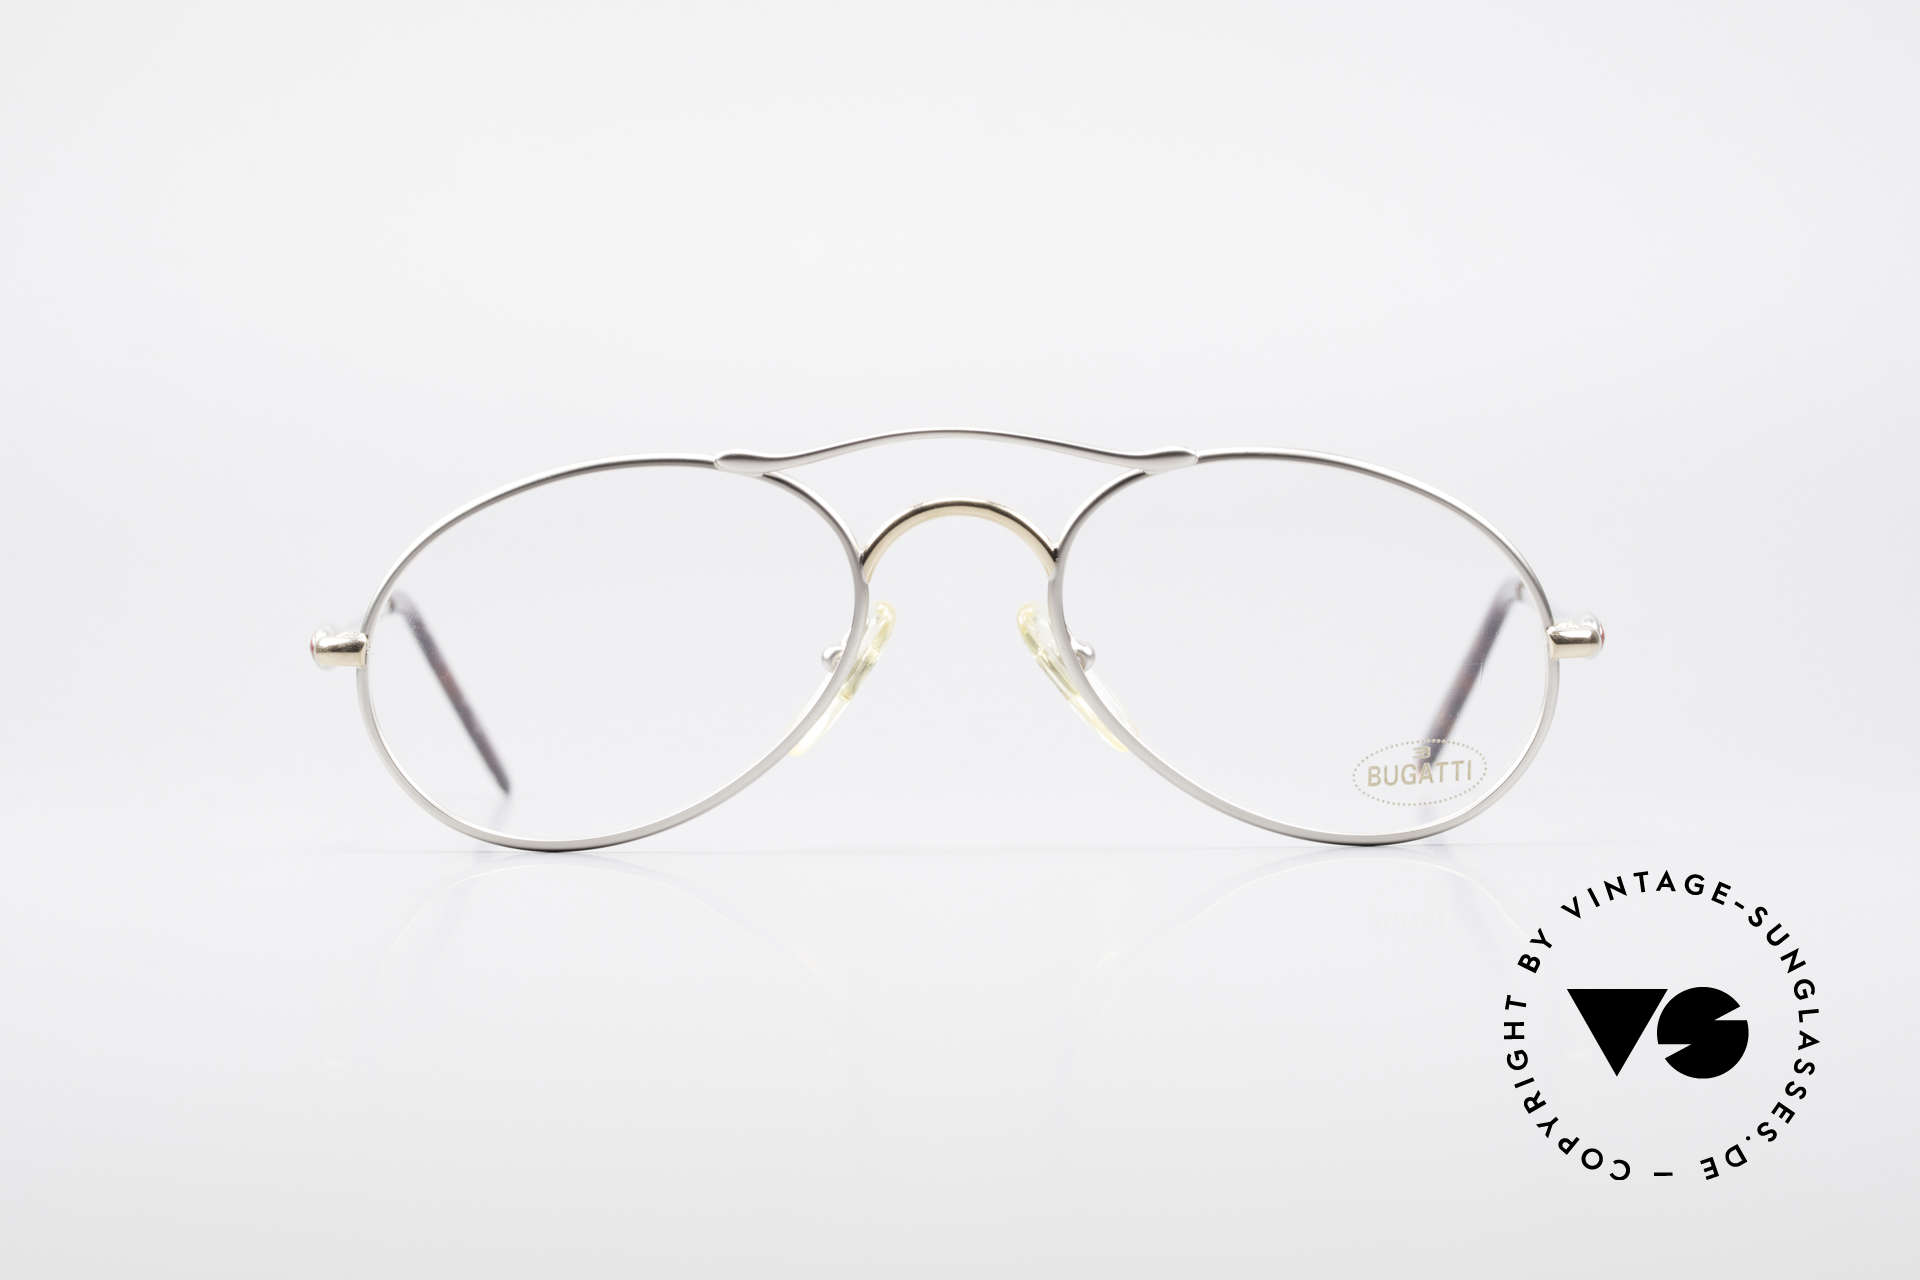 Bugatti 23439 Vintage Glasses With Clip On, made in the mid 90's in France (premium quality), Made for Men